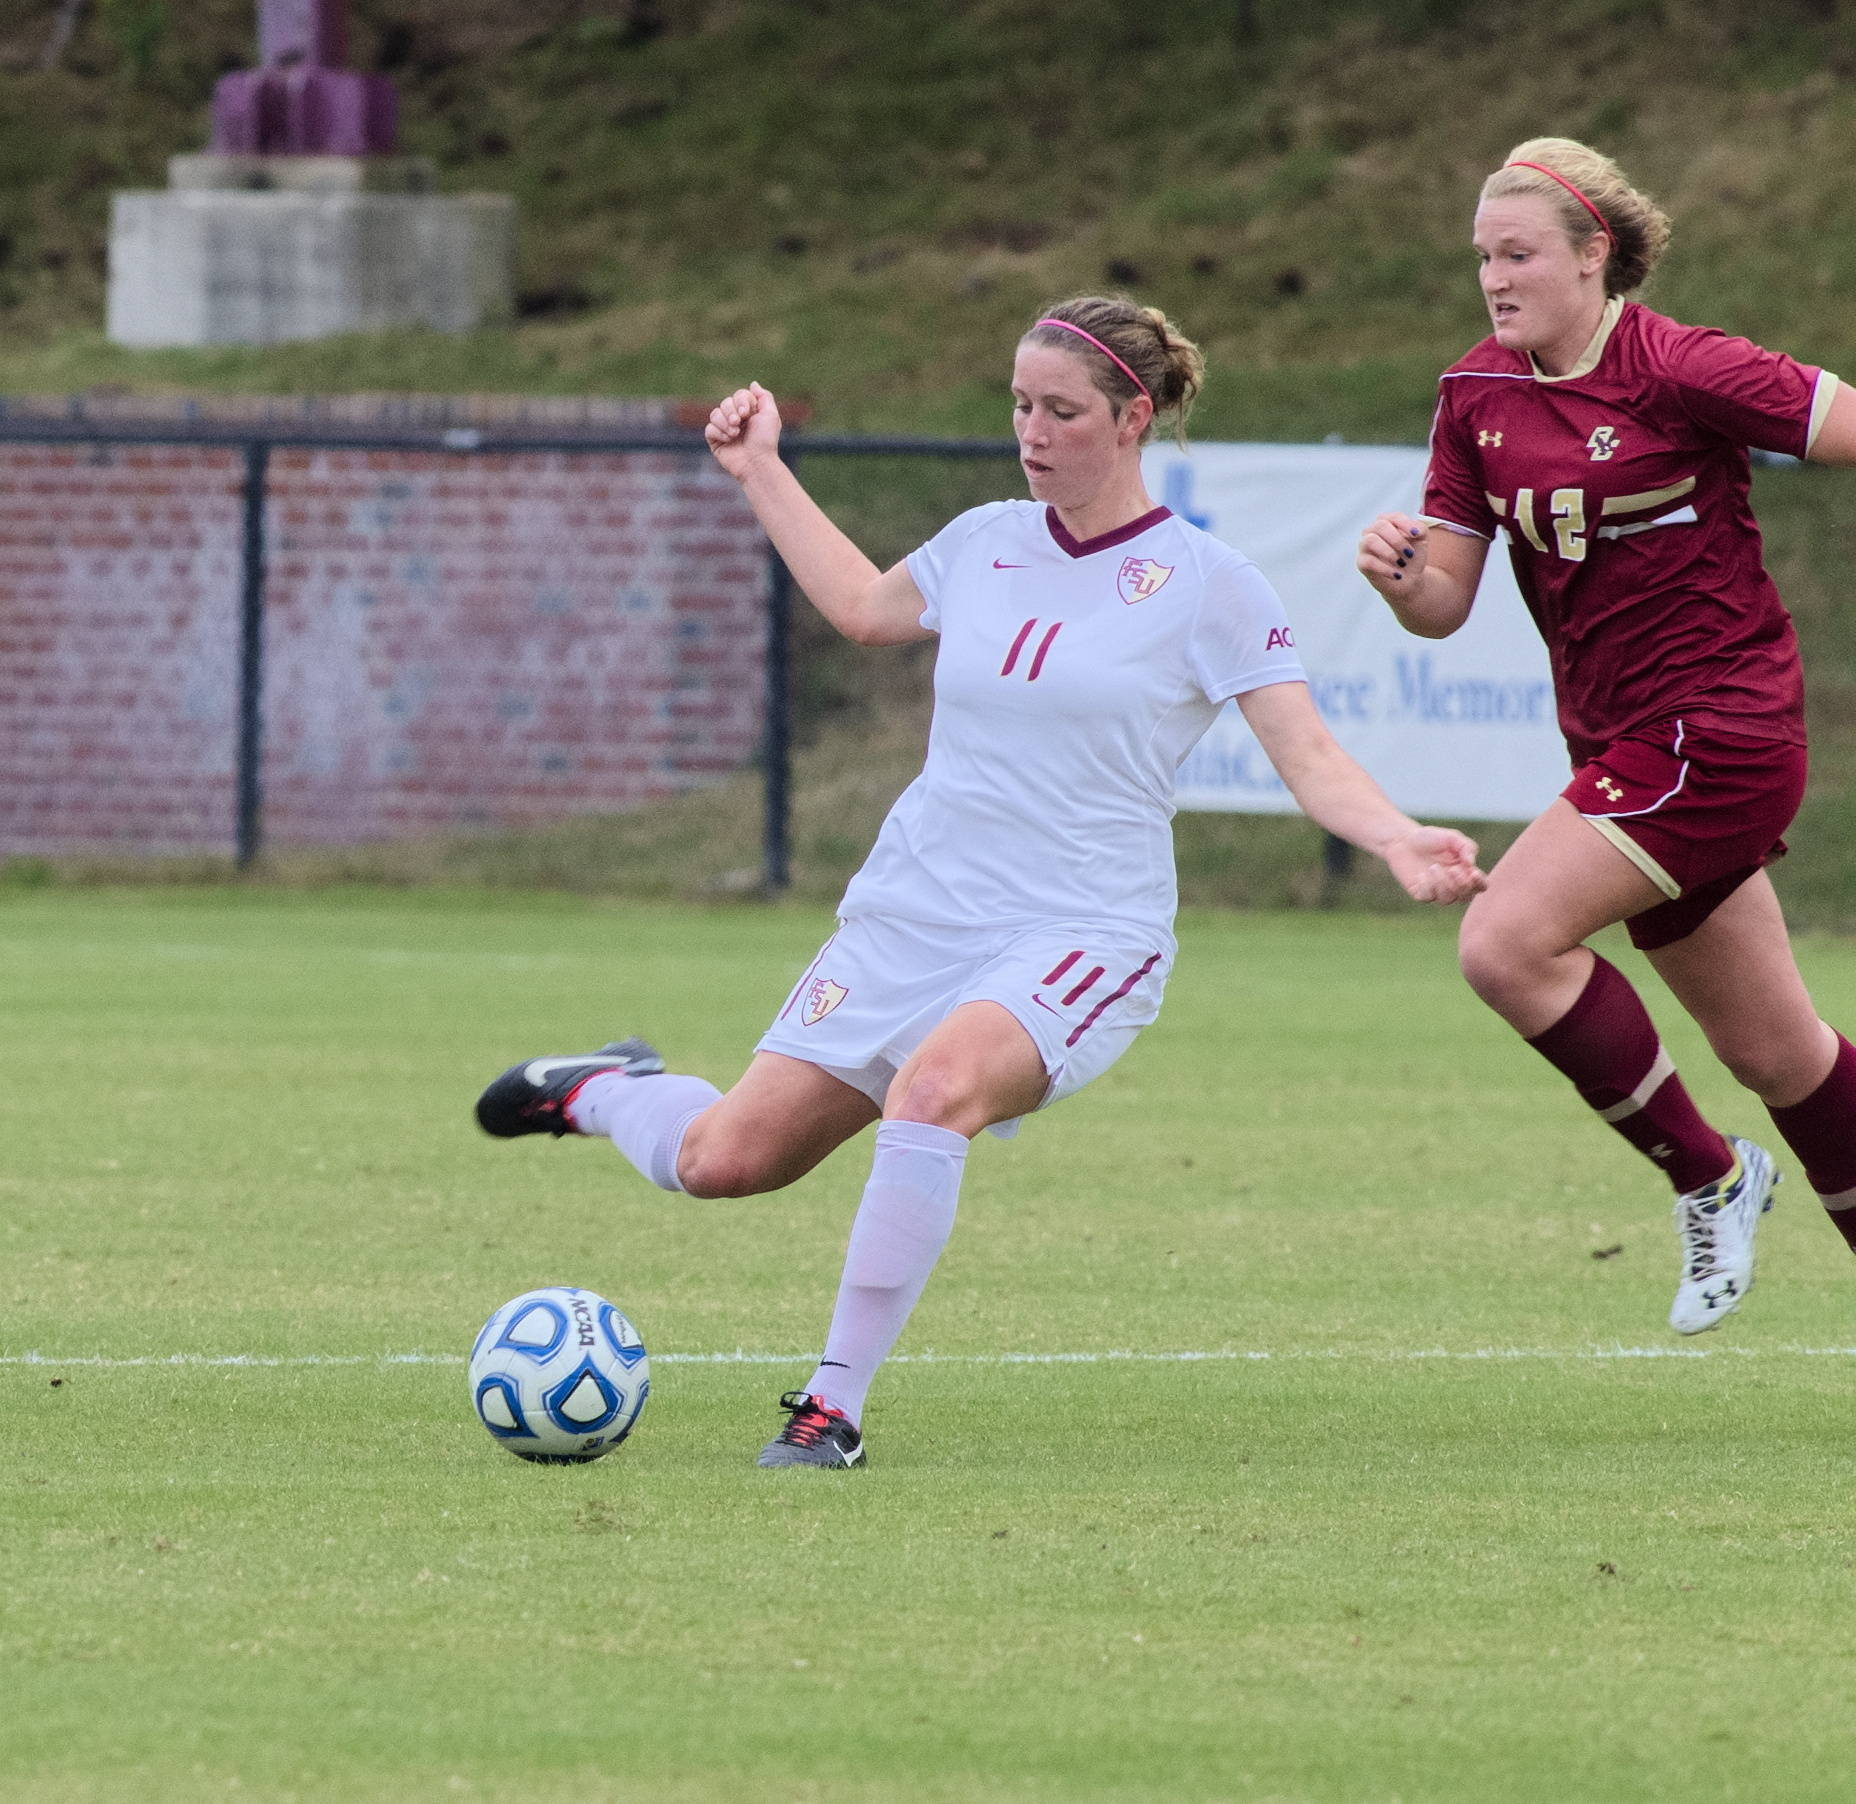 Isabella Schmid (11), FSU vs BC, ACC Tournament, 10/28/12. (Photo by Steve Musco)